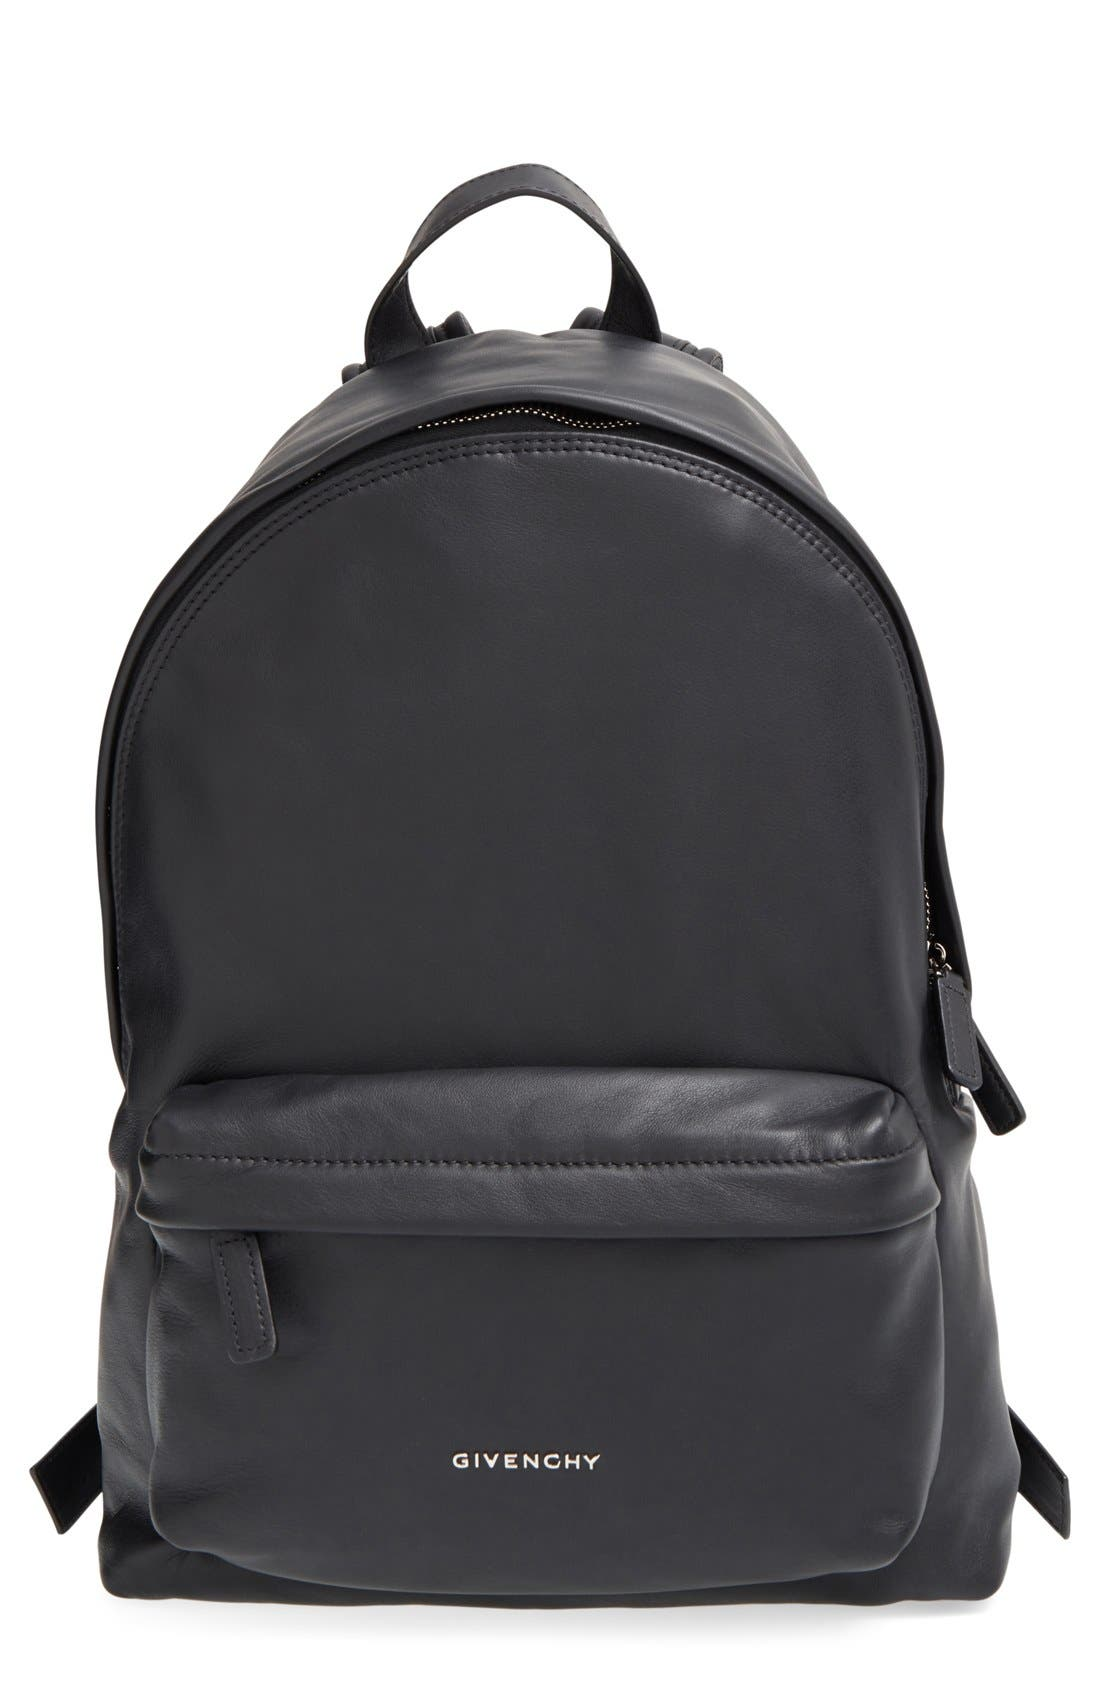 Alternate Image 1 Selected - Givenchy Calfskin Leather Backpack